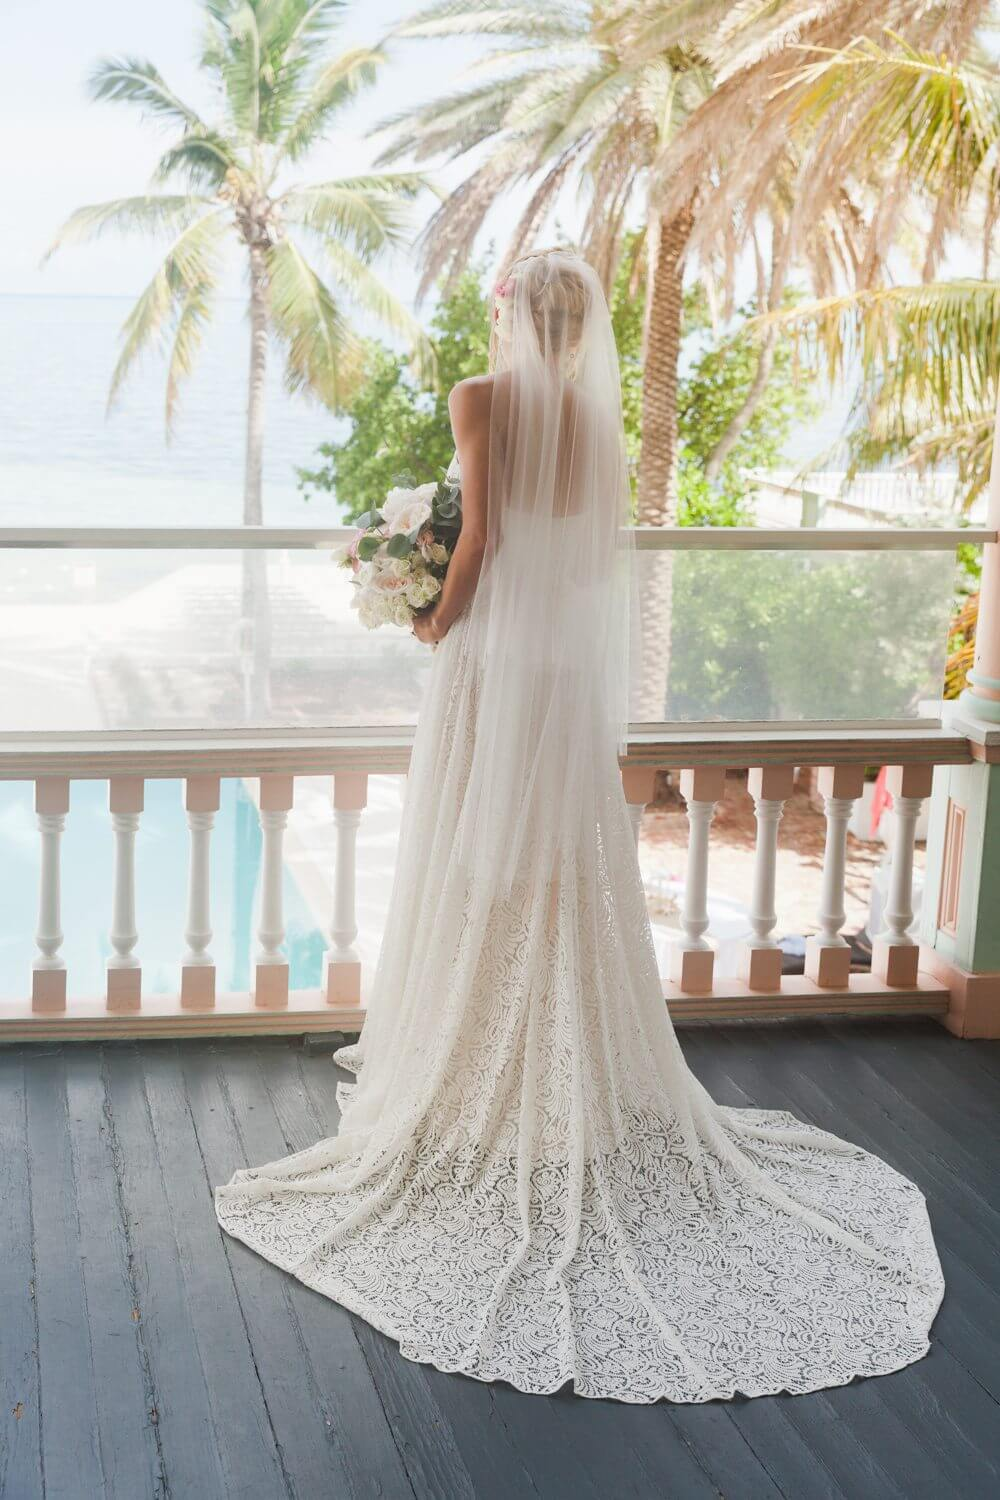 Freas Photography Southernmost House Wedding 42 - Boho Styled Key West Wedding at the Southernmost House in Key West, Florida